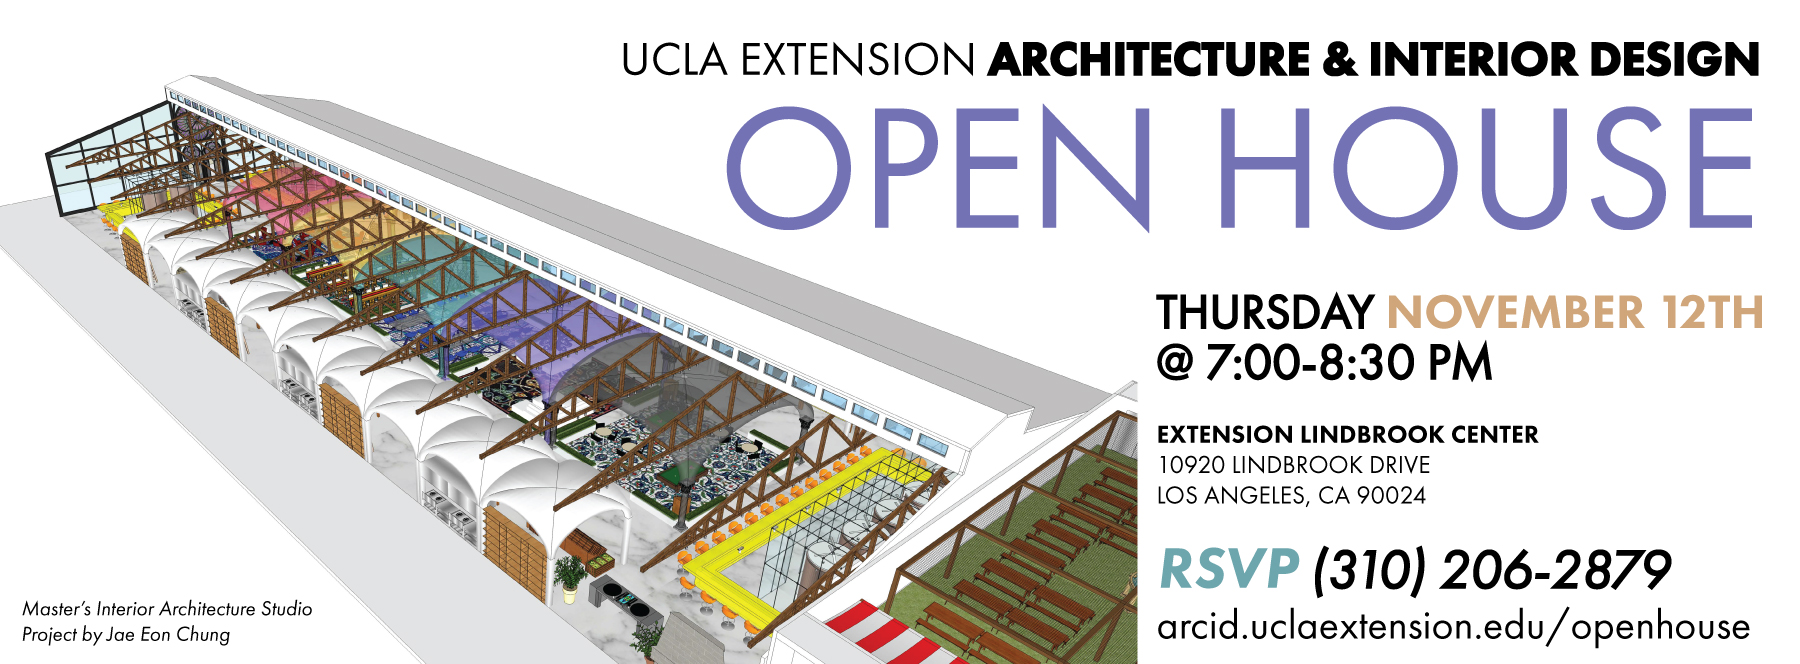 Get Ready For The Ucla Extension Arc Id Information Session Architecture Interior Design